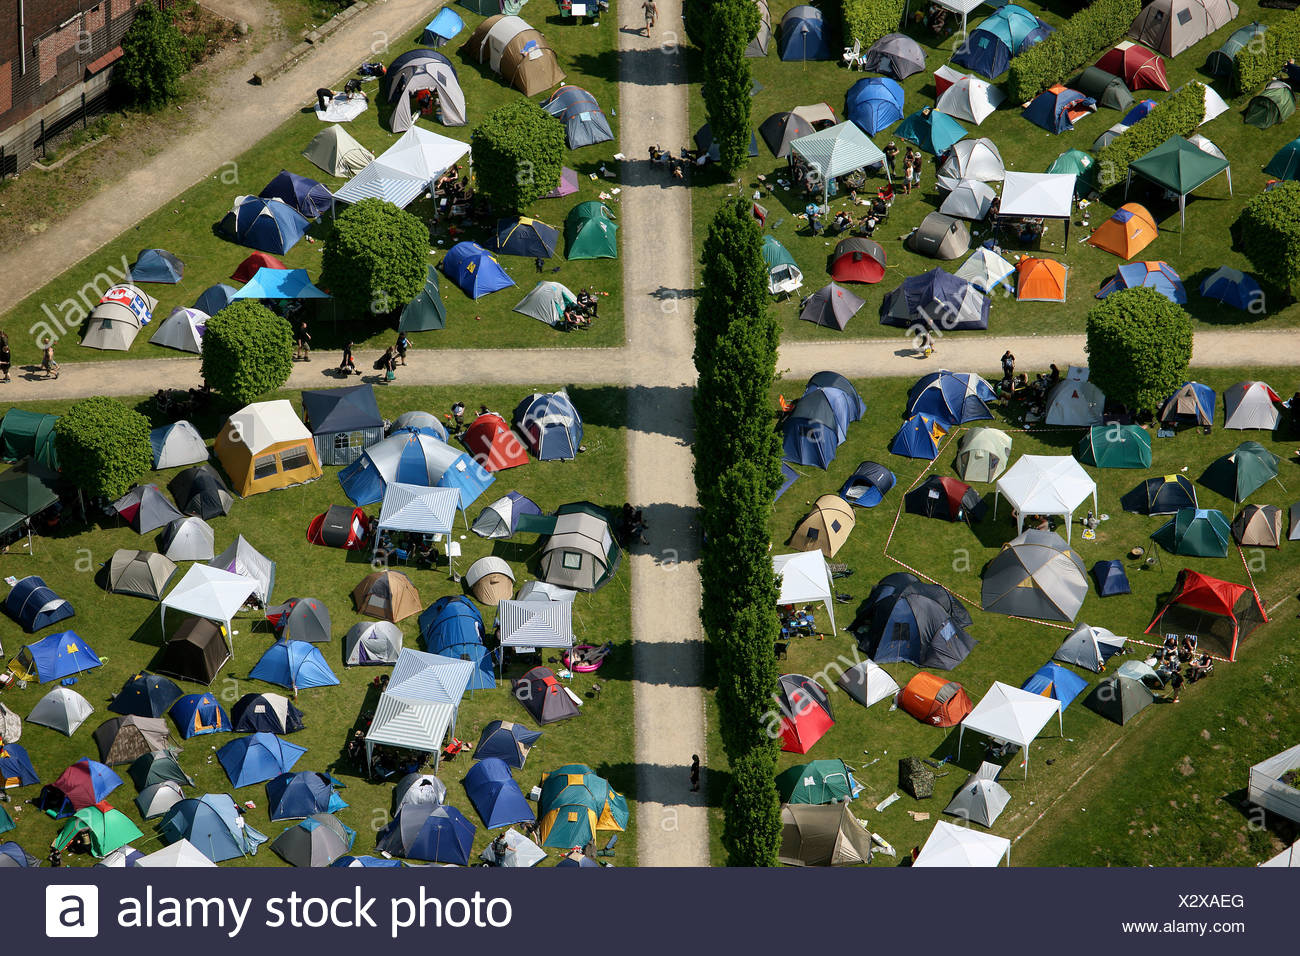 Aerial view, tents, crossing footpaths, Rock Hard Festival, Nordsternpark, Gelsenkirchen, Ruhr Area, North Rhine-Westphalia, Ge - Stock Image